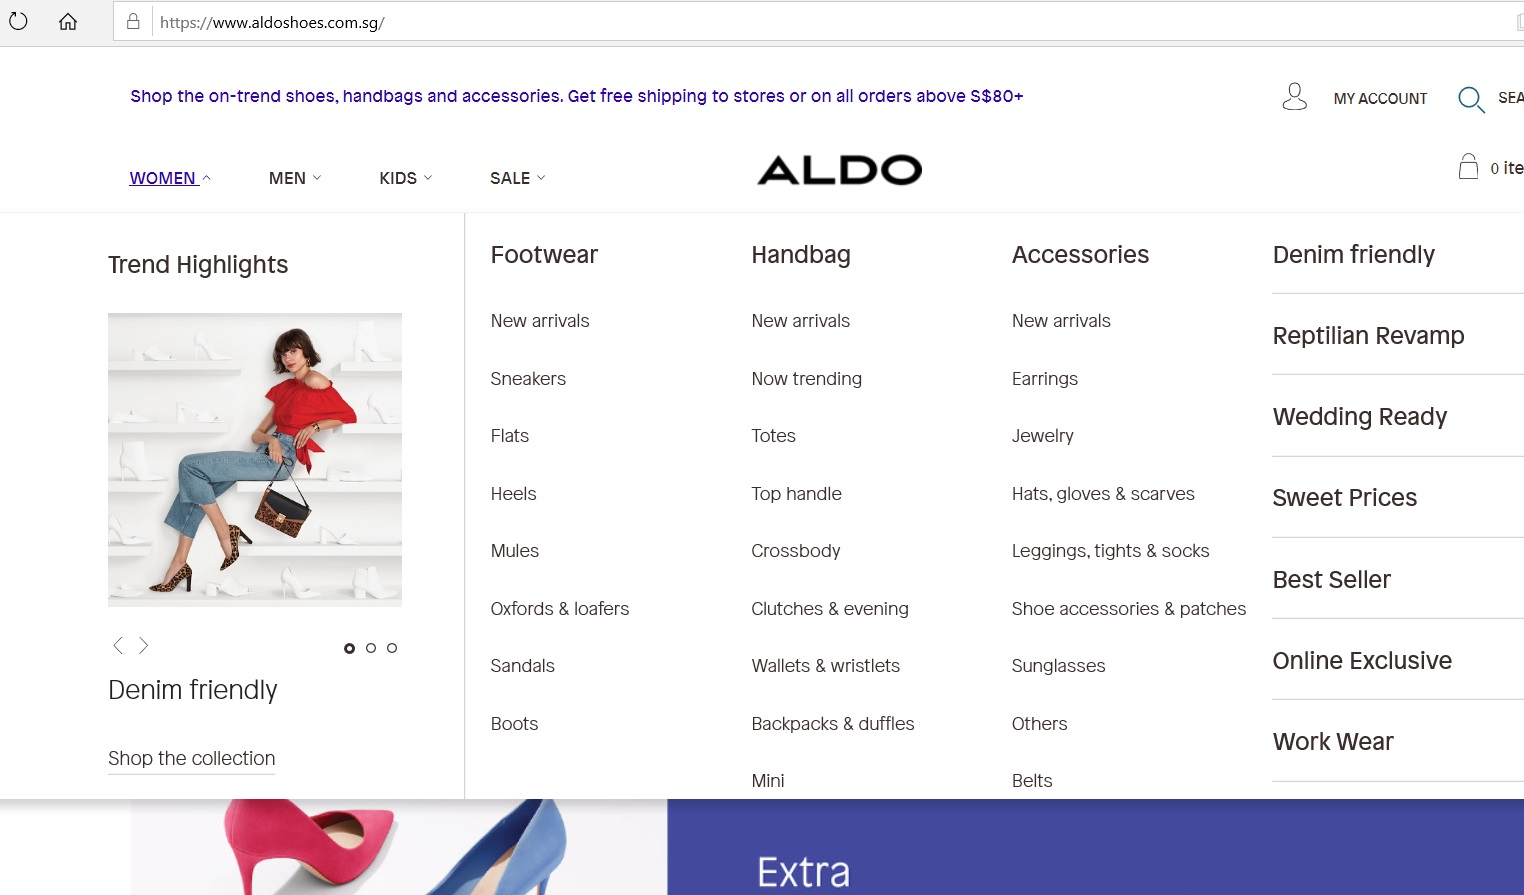 Aldo product category dropdown for Women.